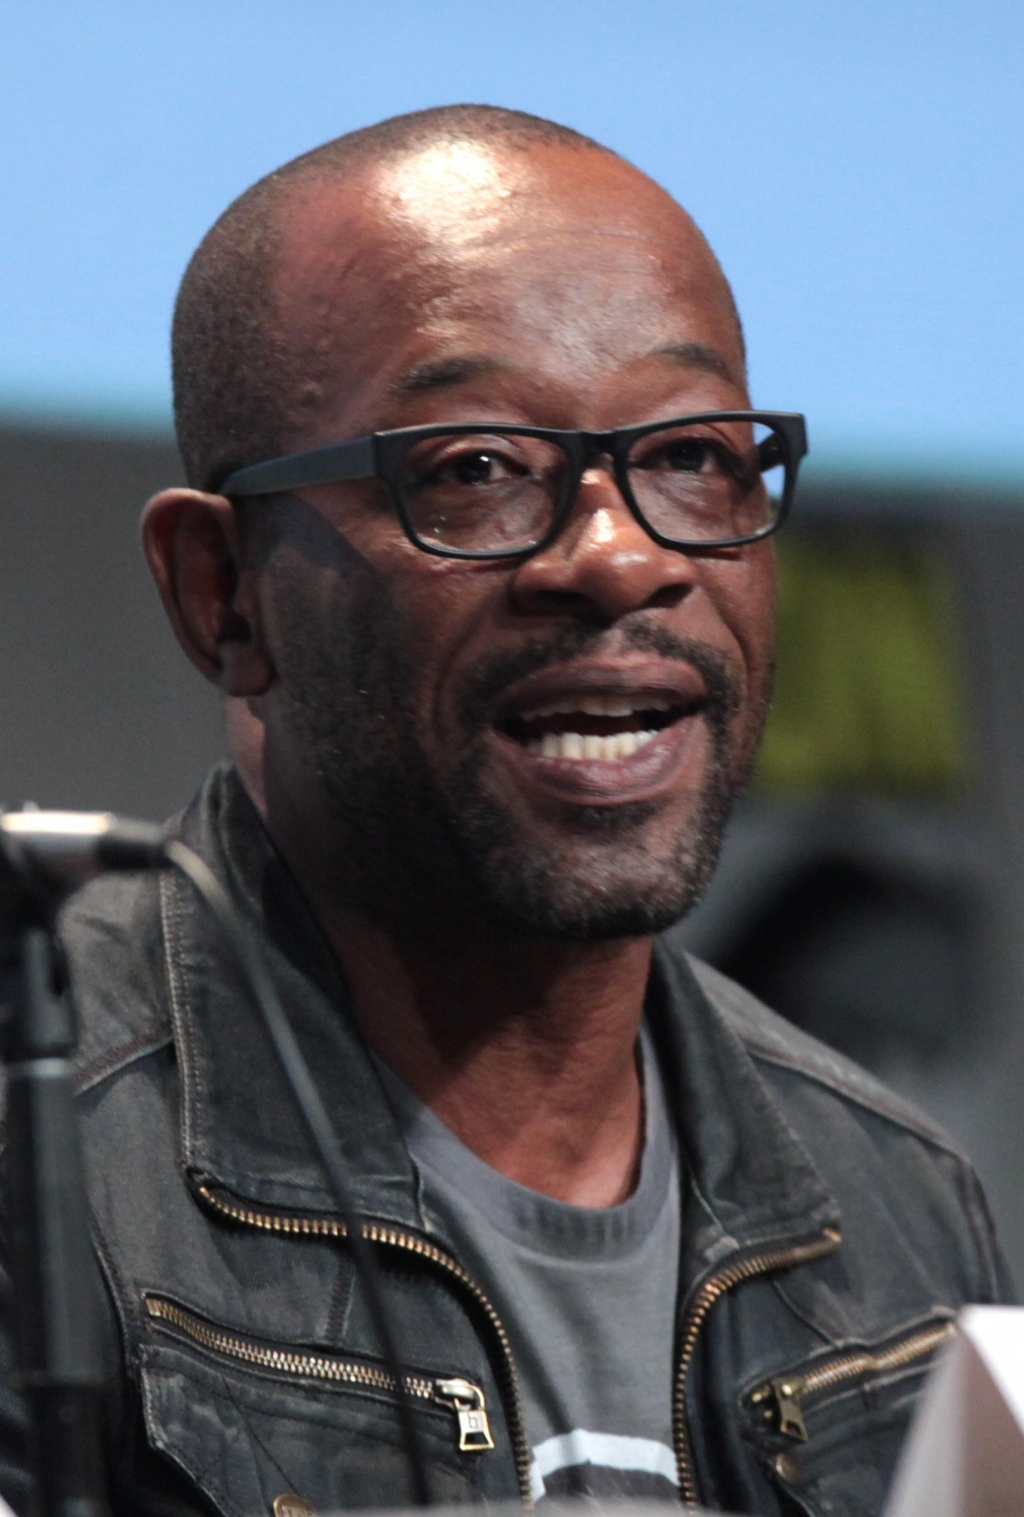 Blade Runner 2' Adds Lennie James of 'The Walking Dead' in